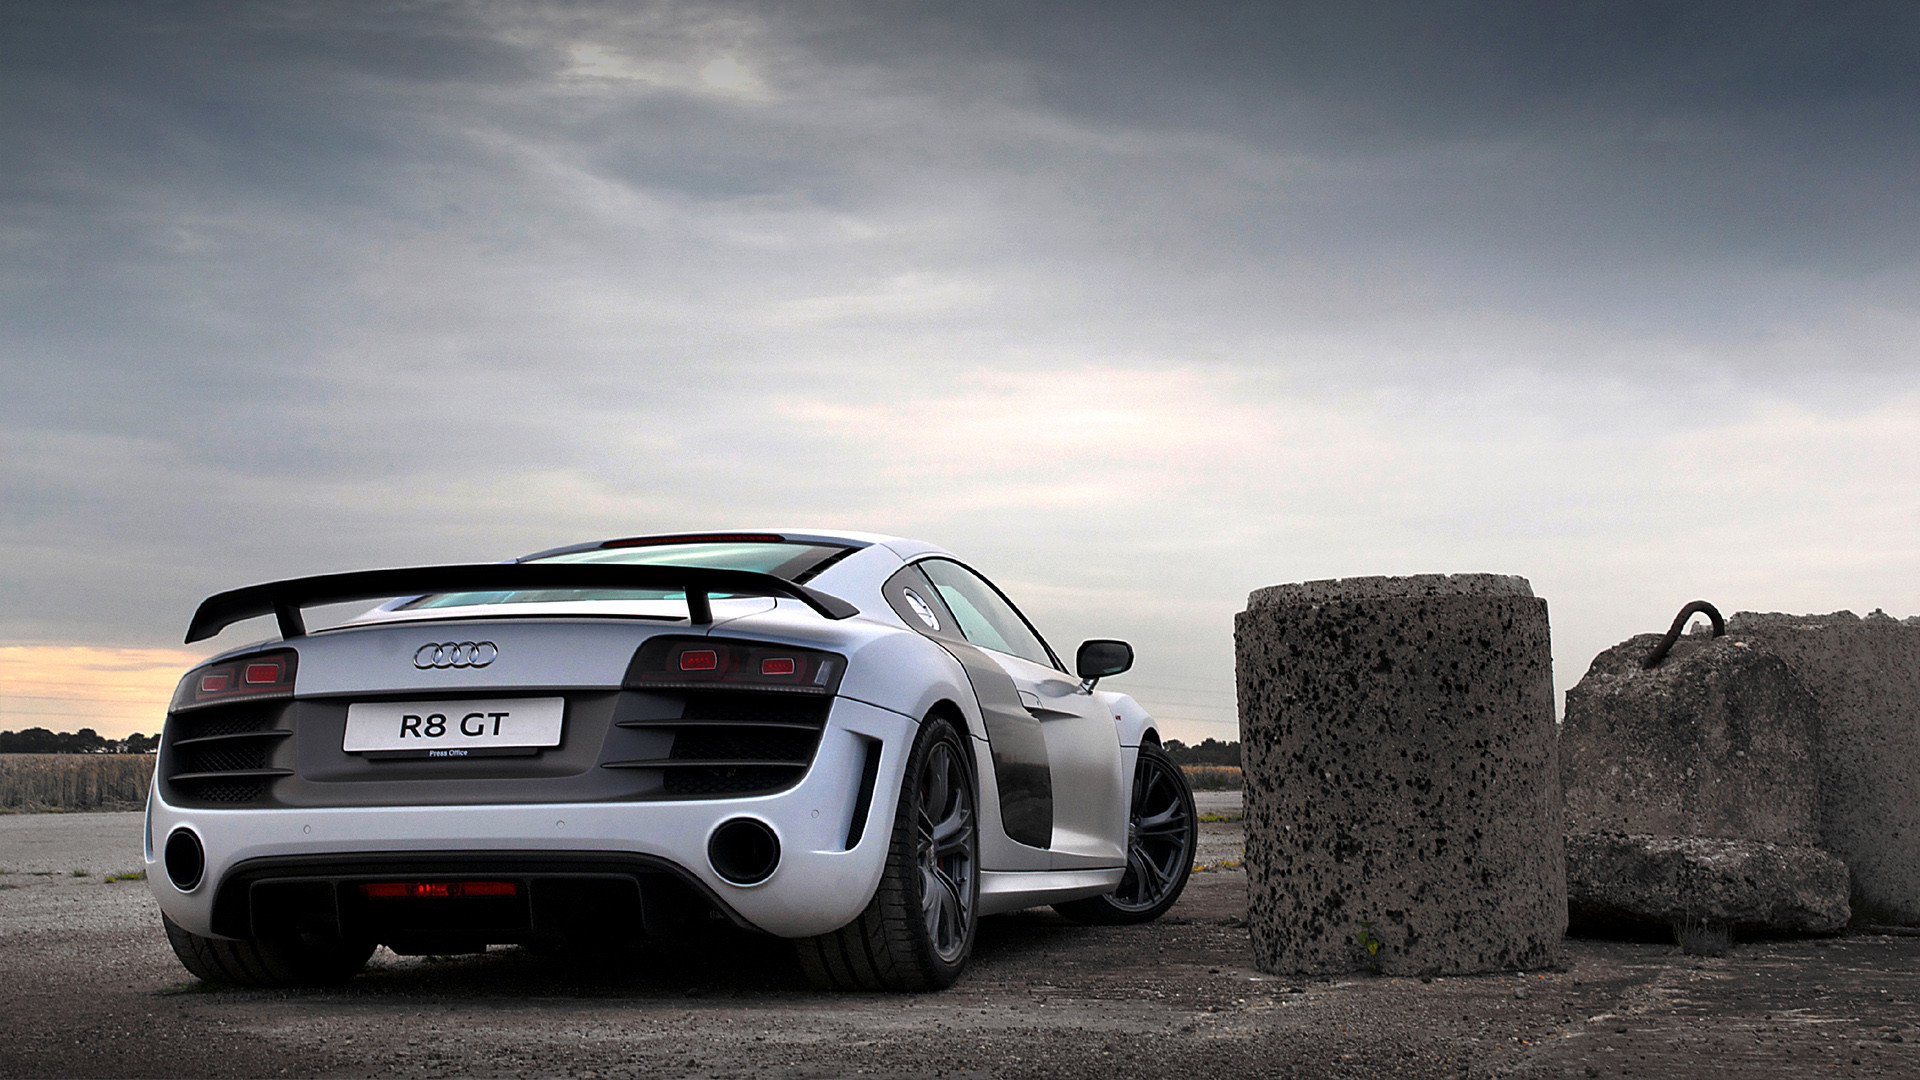 Collection Of Audi R8 Wallpaper On Spyder Wallpapers